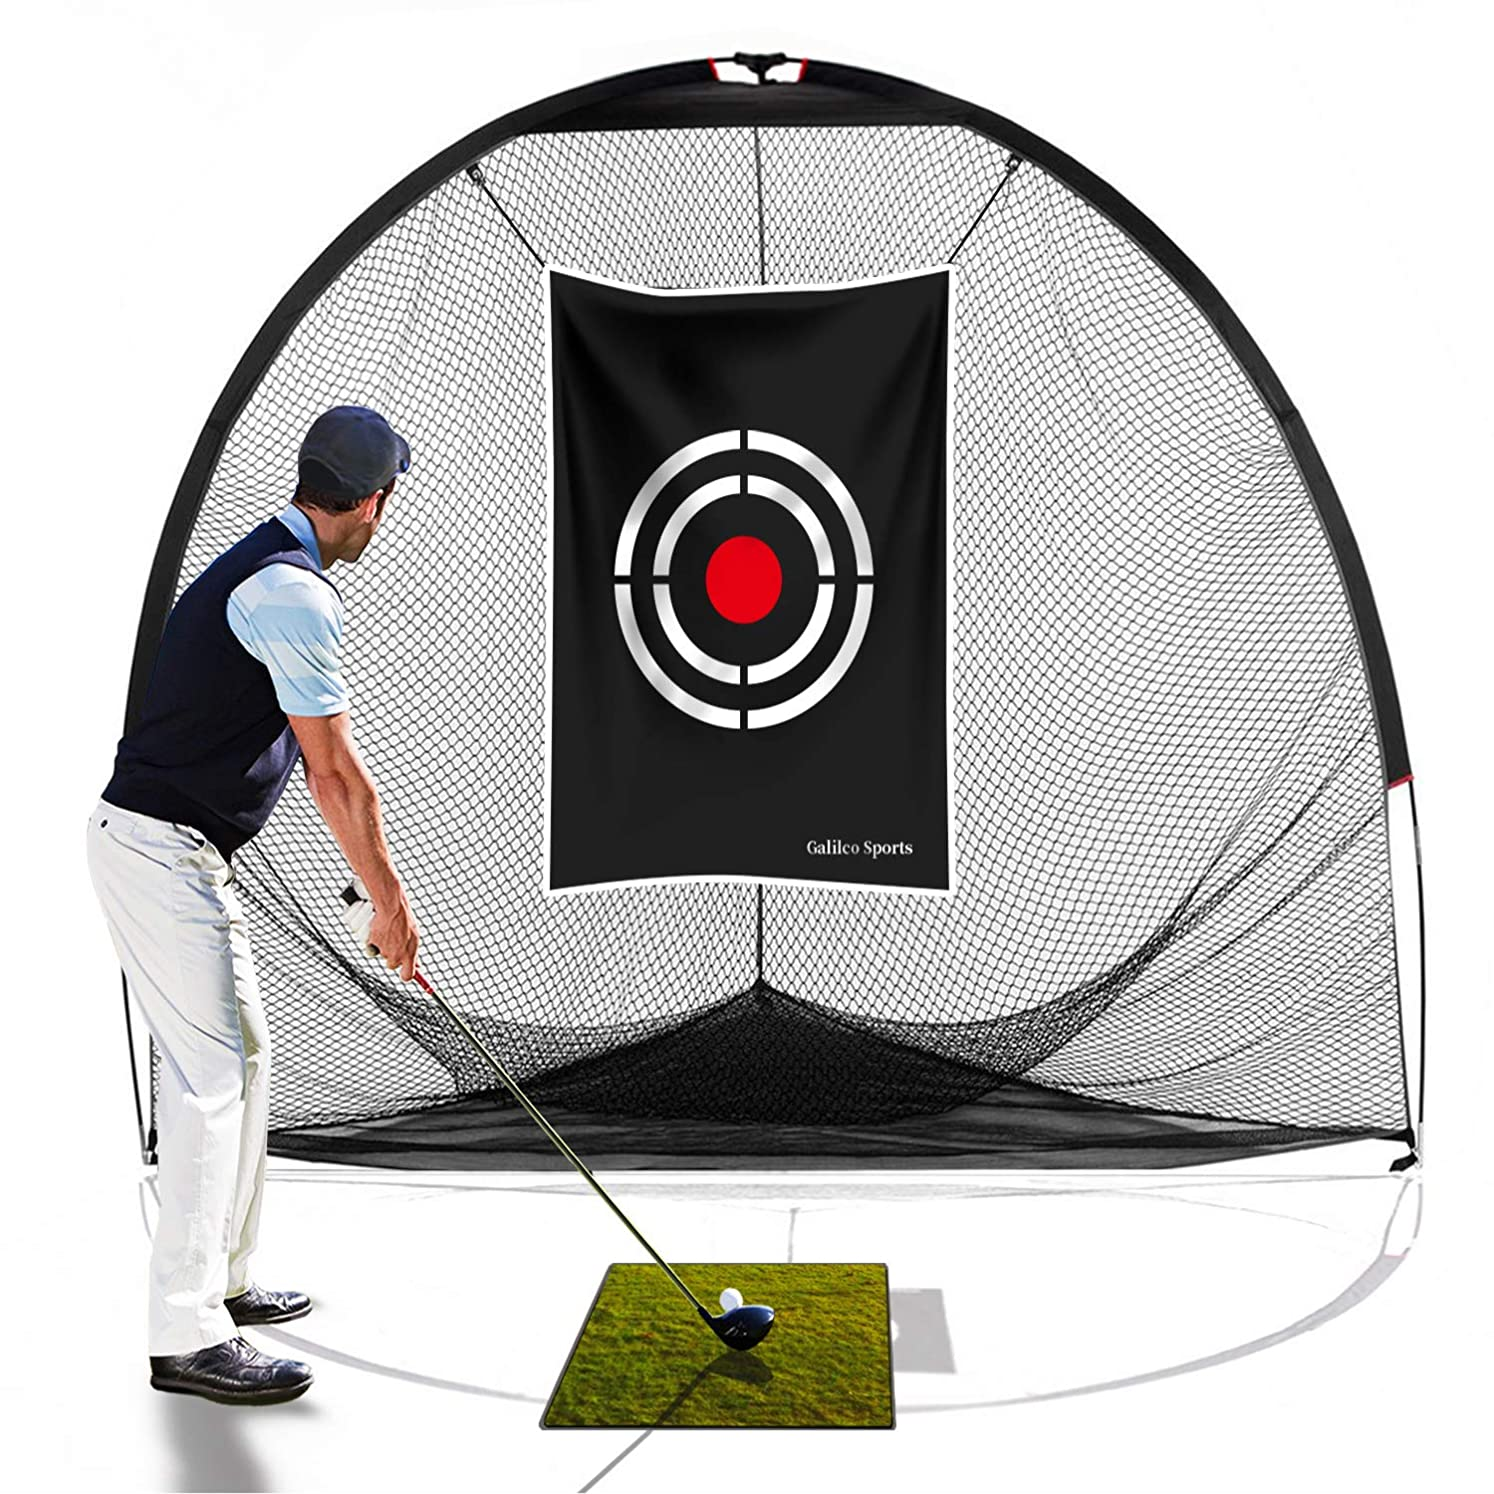 Galileo Golf Nets Golf Practice Net Hitting Netting for Backyard Portable Driving Range Golf Cage Indoor Golf Net Training Aids with Target 8'x7'x7' bbjjqnmbw0086703